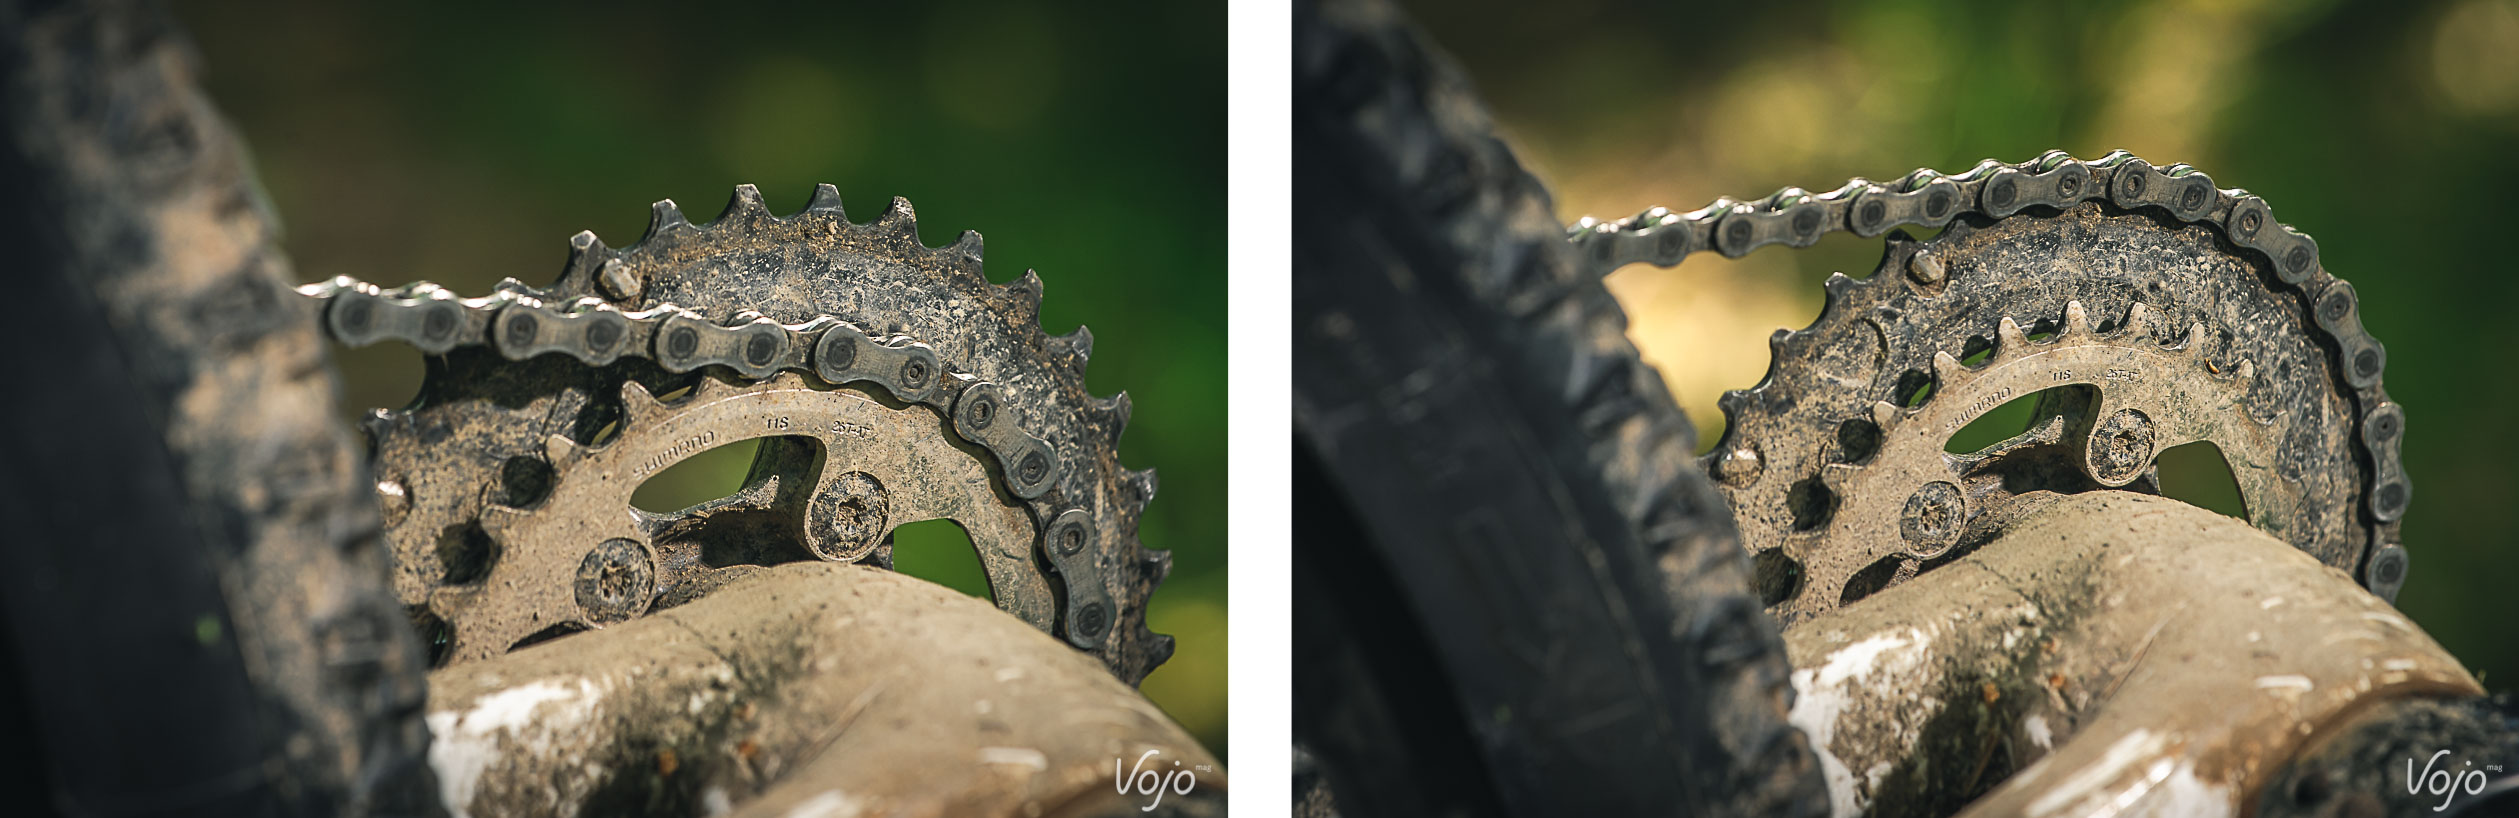 9-Shimano_XTR_Di2_Test_longue_duree_Copyright_Beart_VojoMag-1